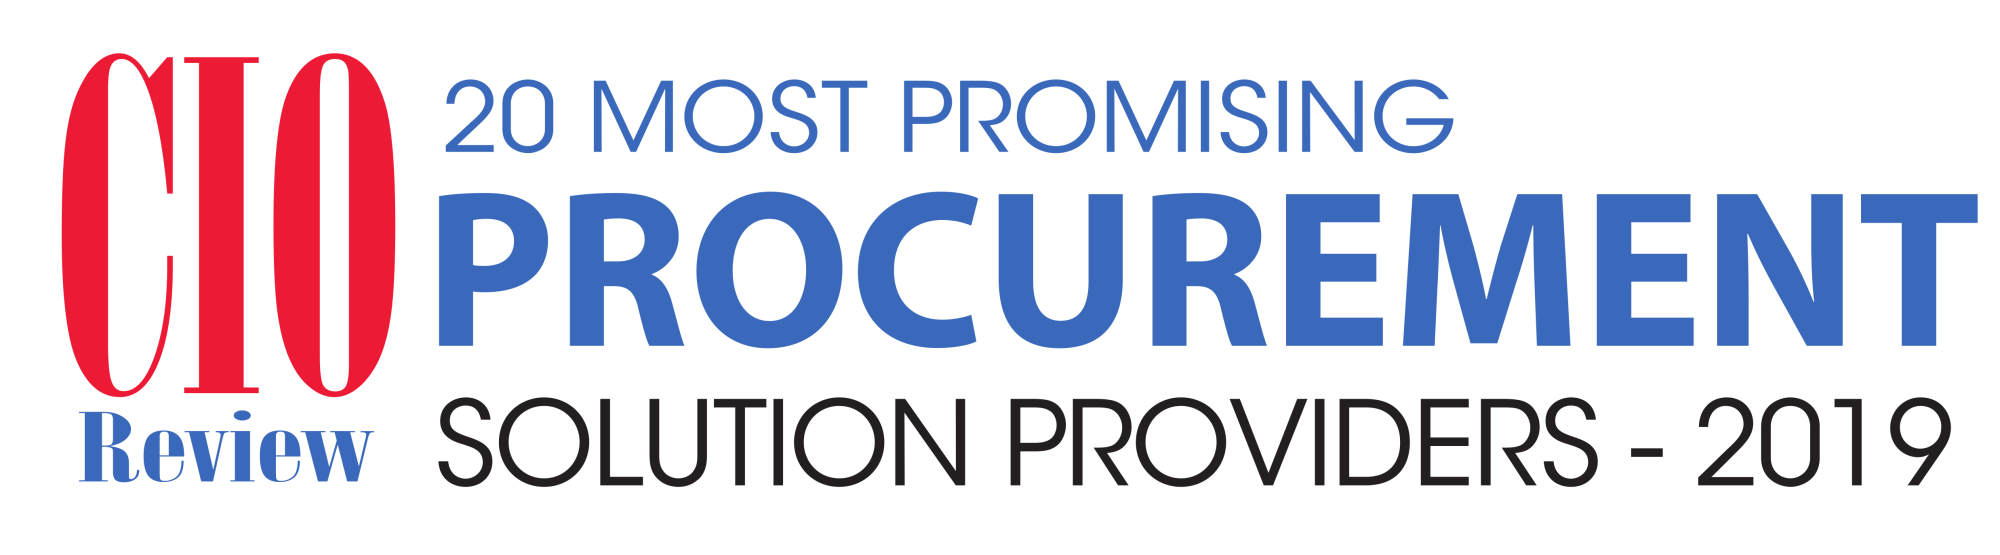 CureMint Named 20 Most Promising Procurement Solution Providers by CIO Review